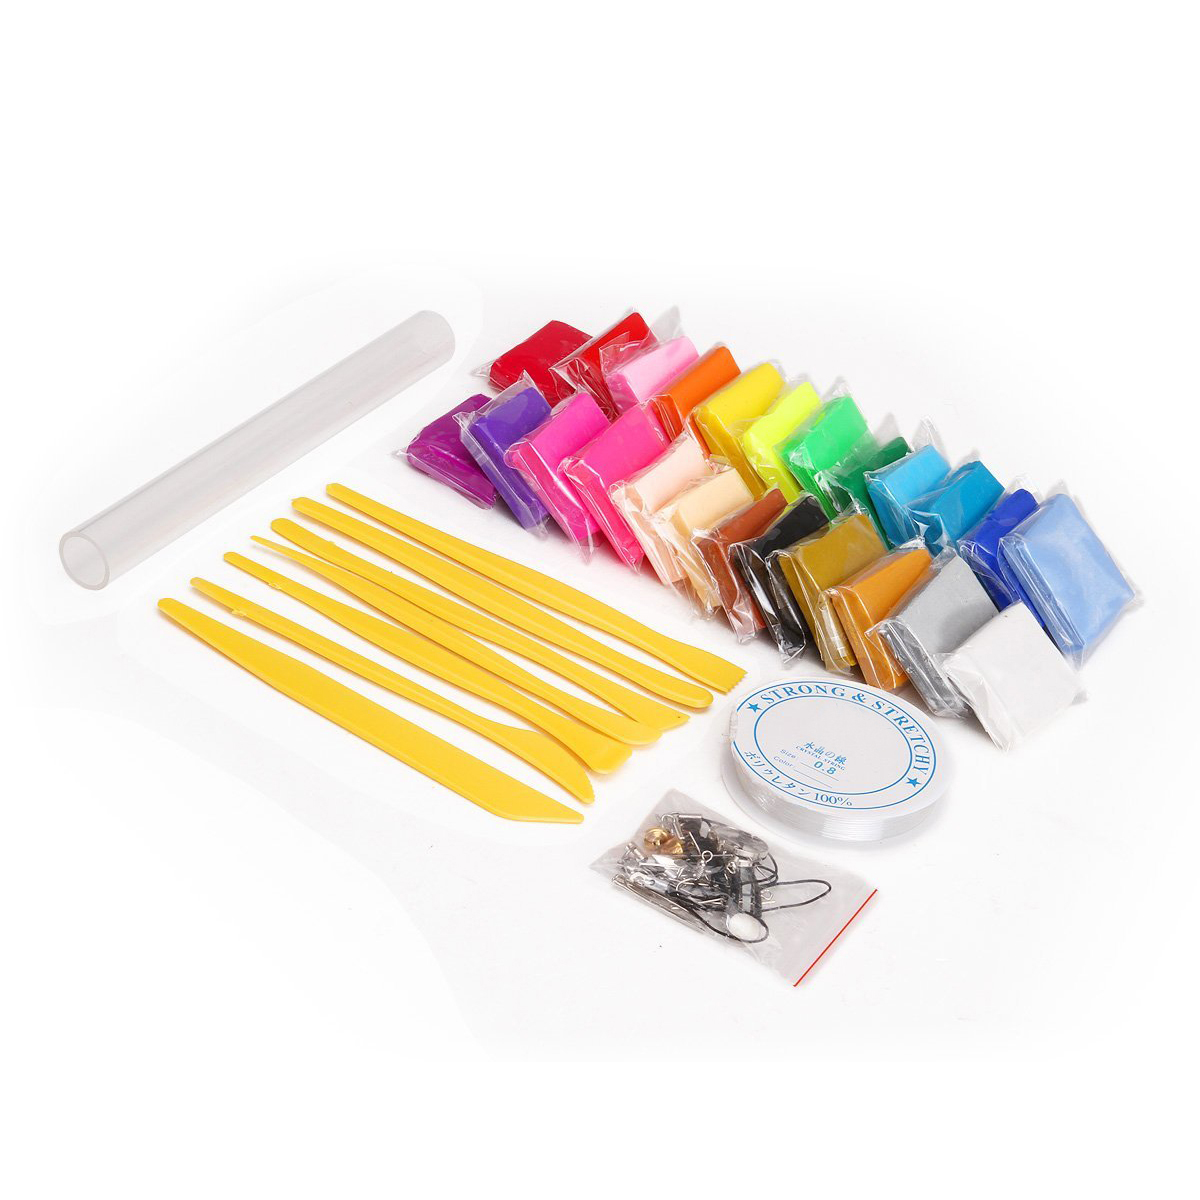 24 colors + Pate polymer modeling tools + accessories + crystal yarn + roll